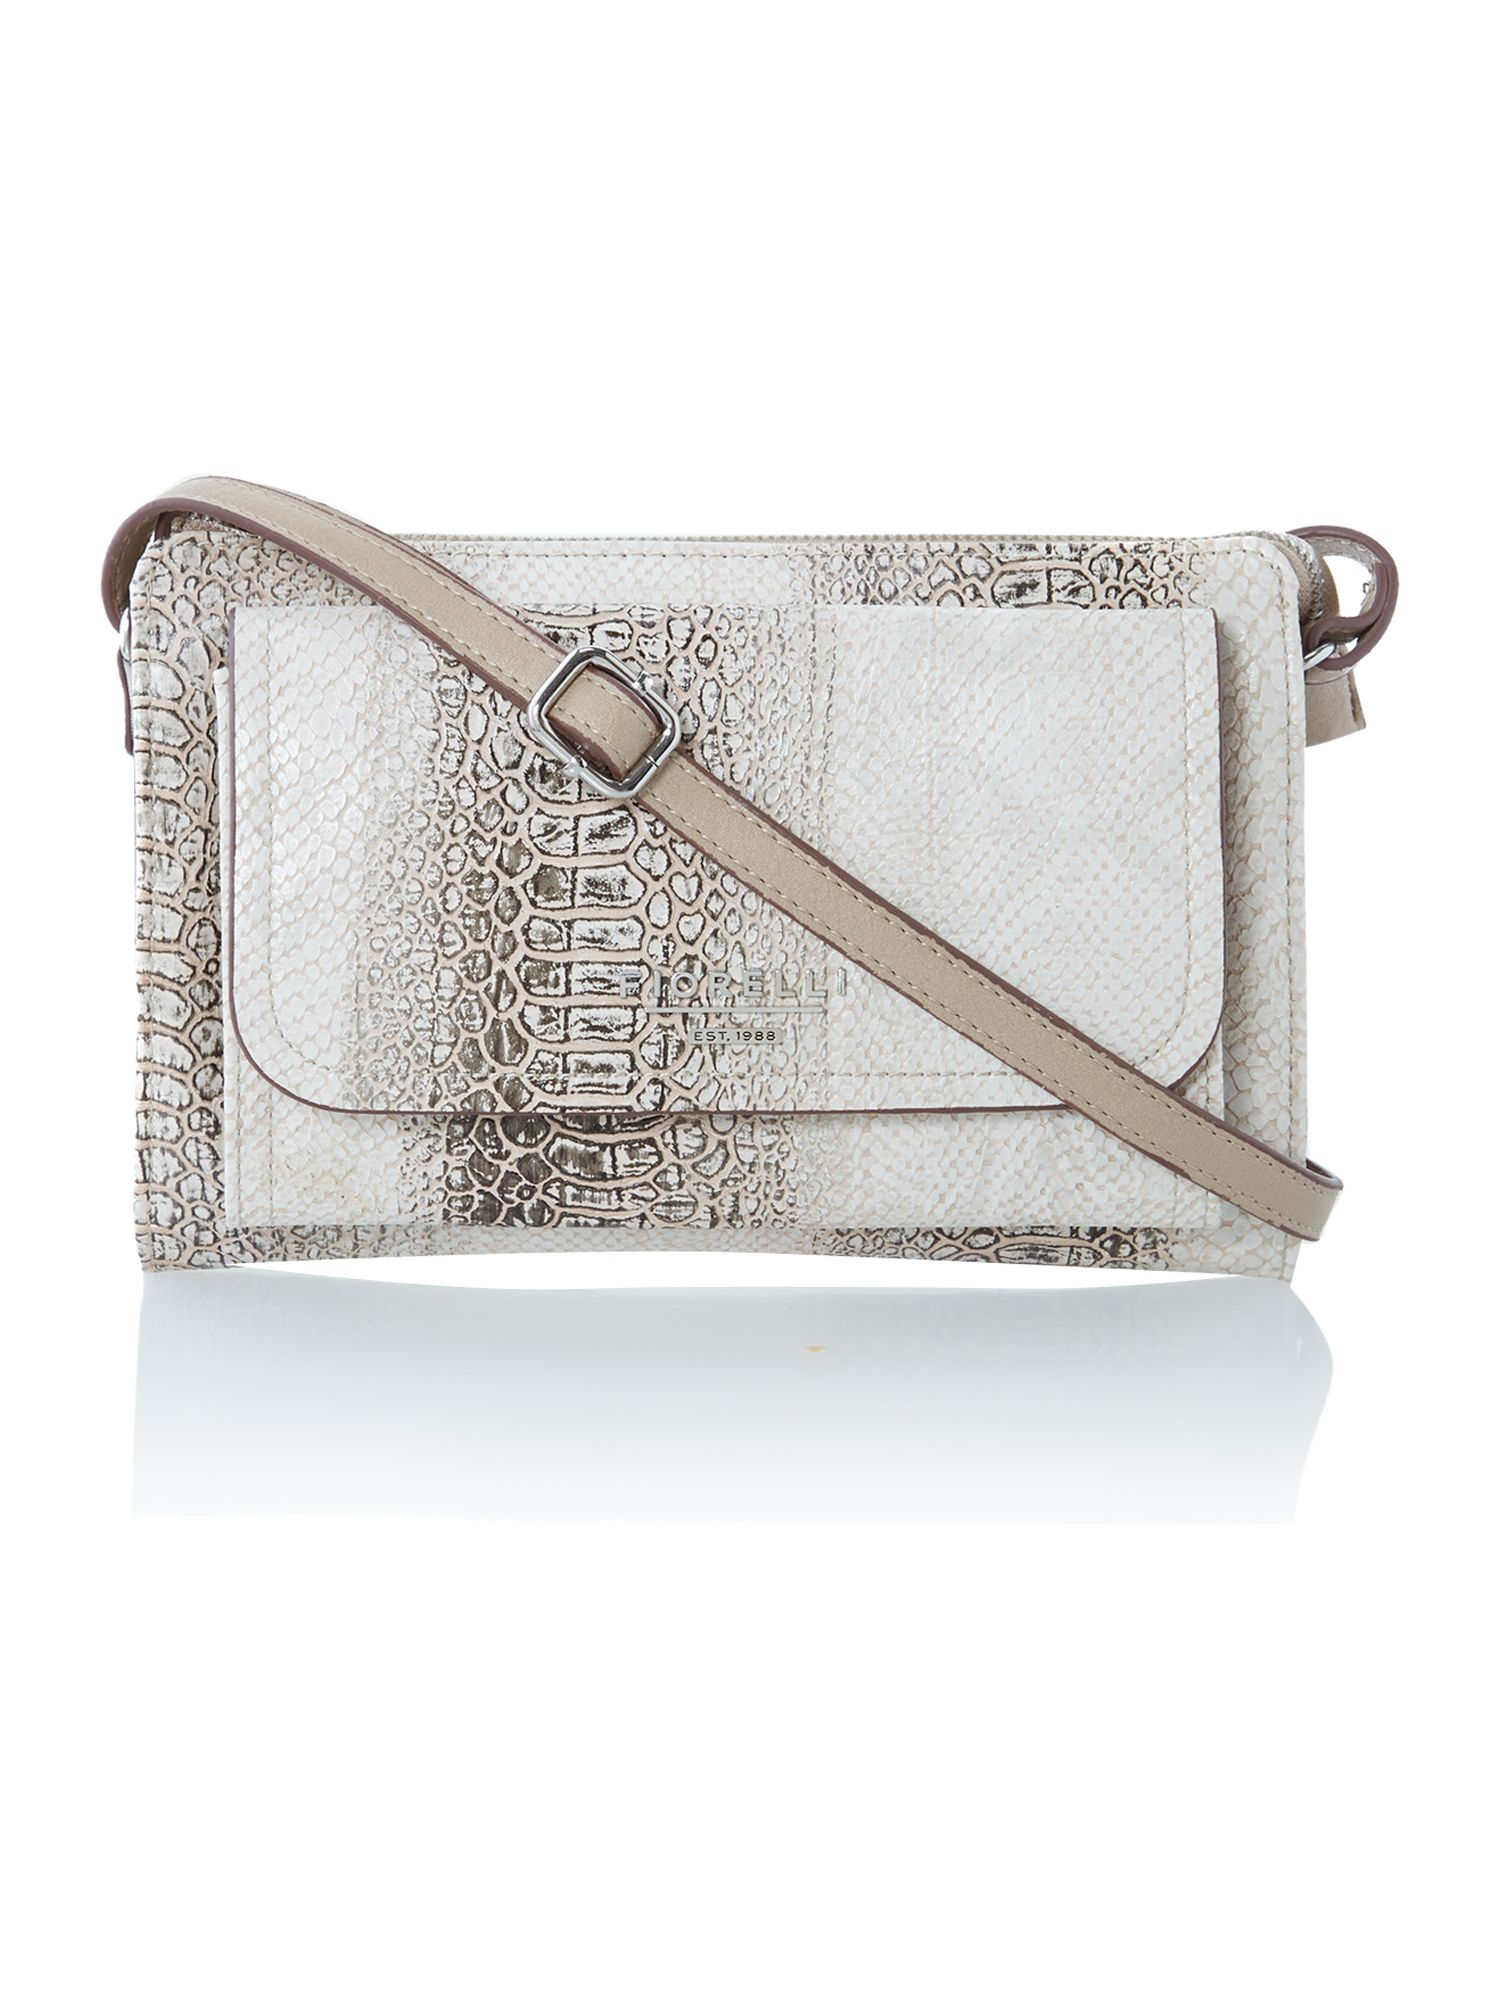 Tessa neutral snake small cross body bag